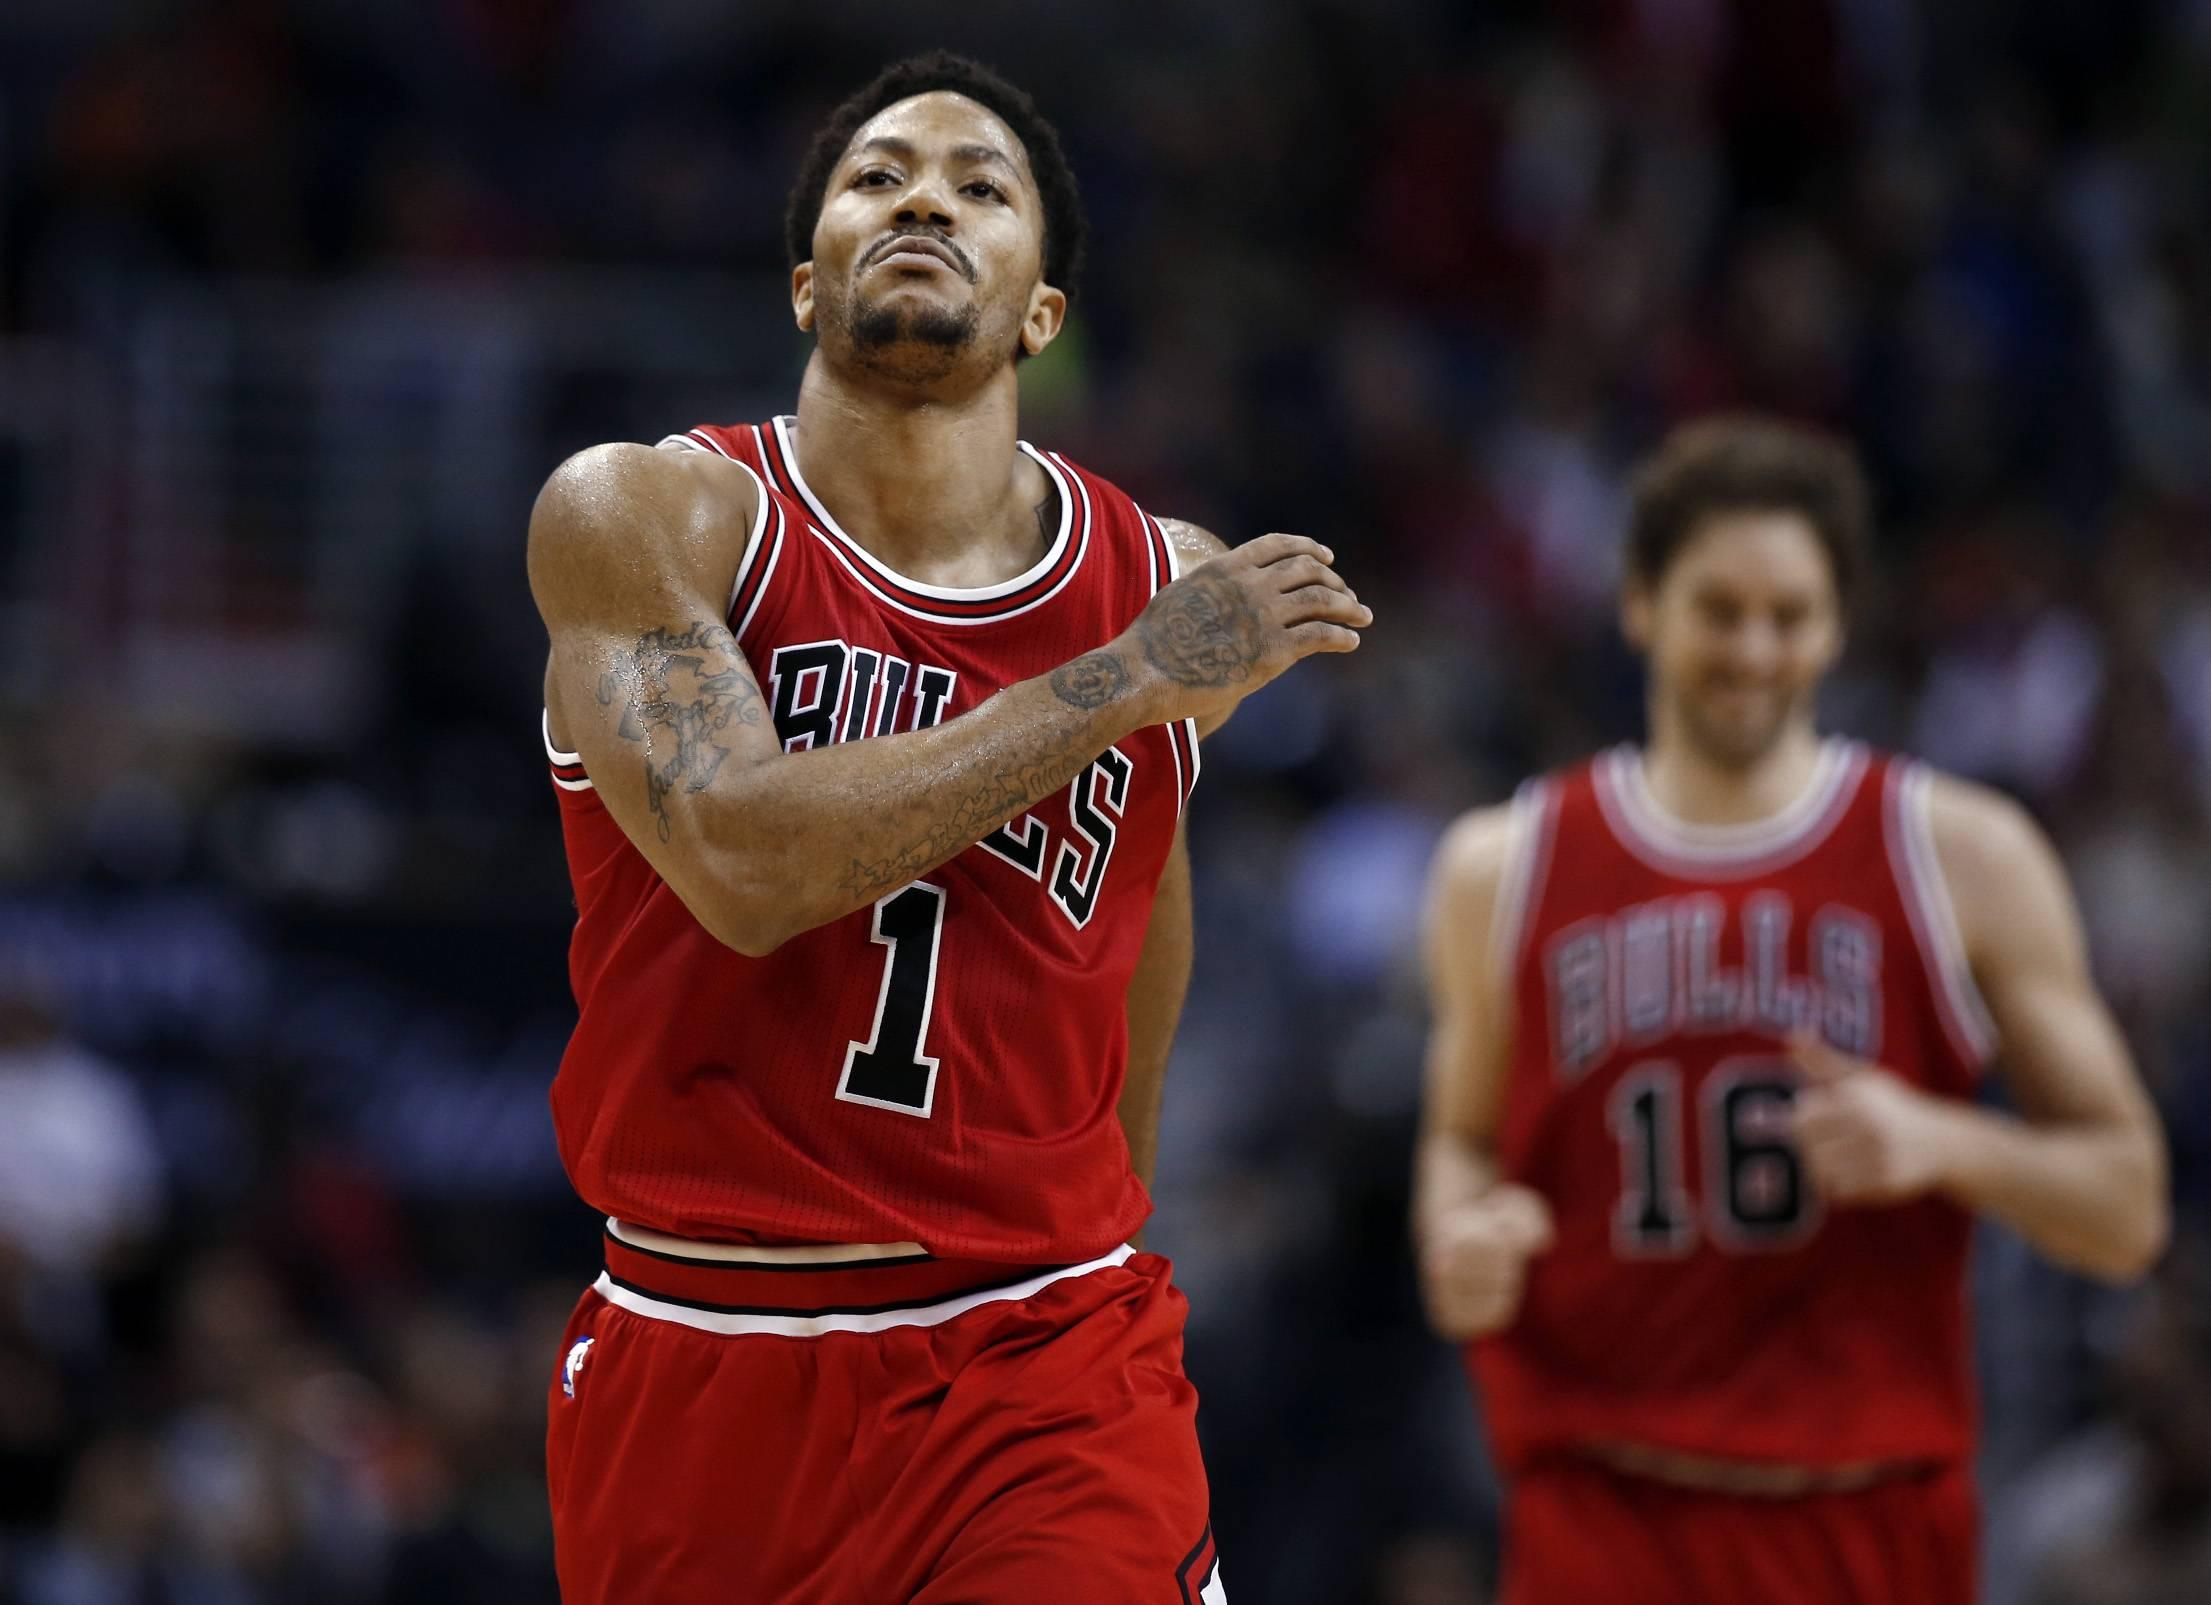 Bulls guard Derrick Rose celebrates after hitting a pullup jumper in the fourth quarter Tuesday night.